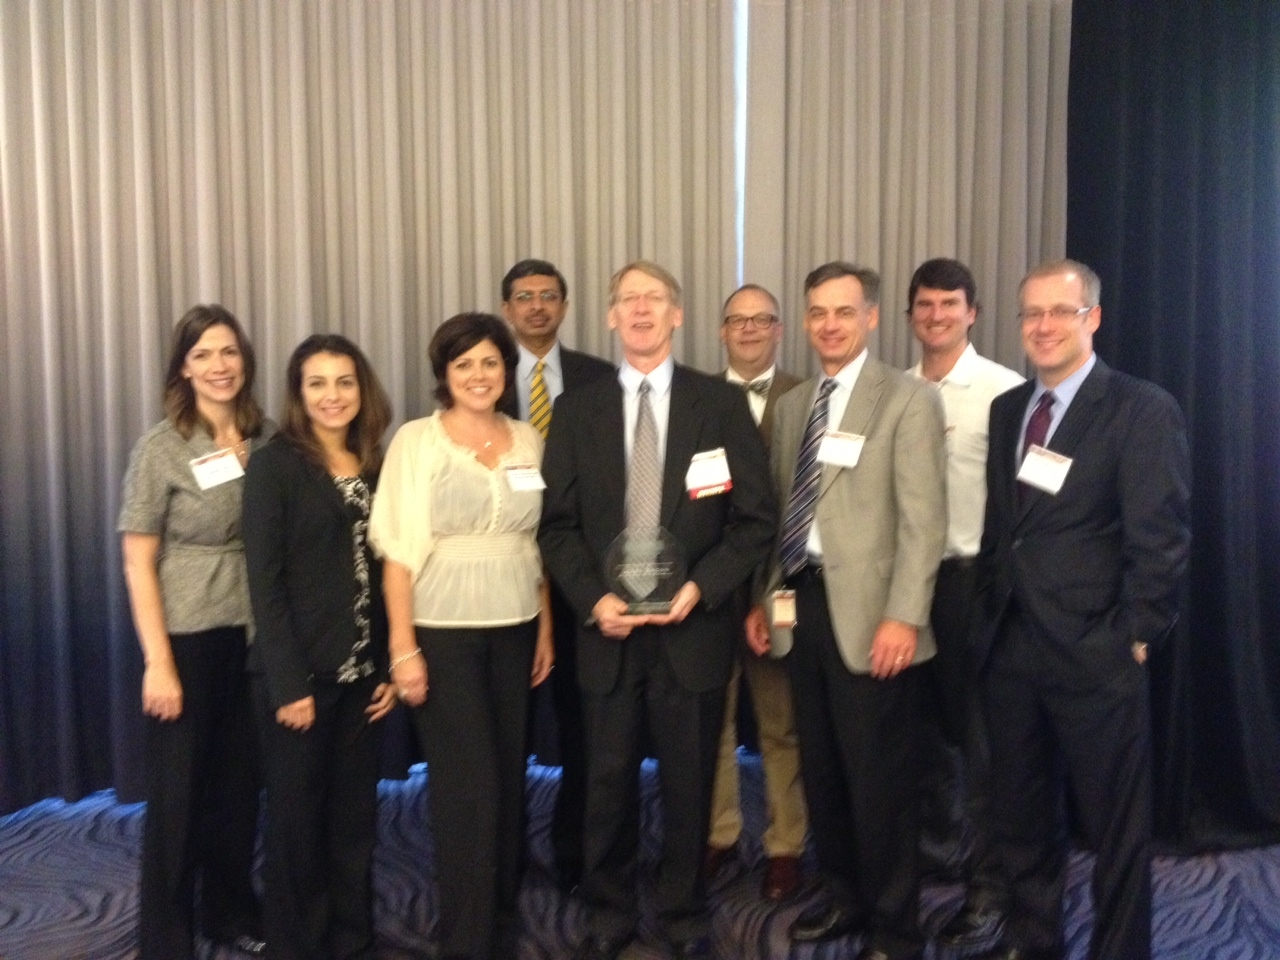 Honoring Capella's Sr. VP and CIO Loren Brown at the MSPBJ CIO of the Year Awards